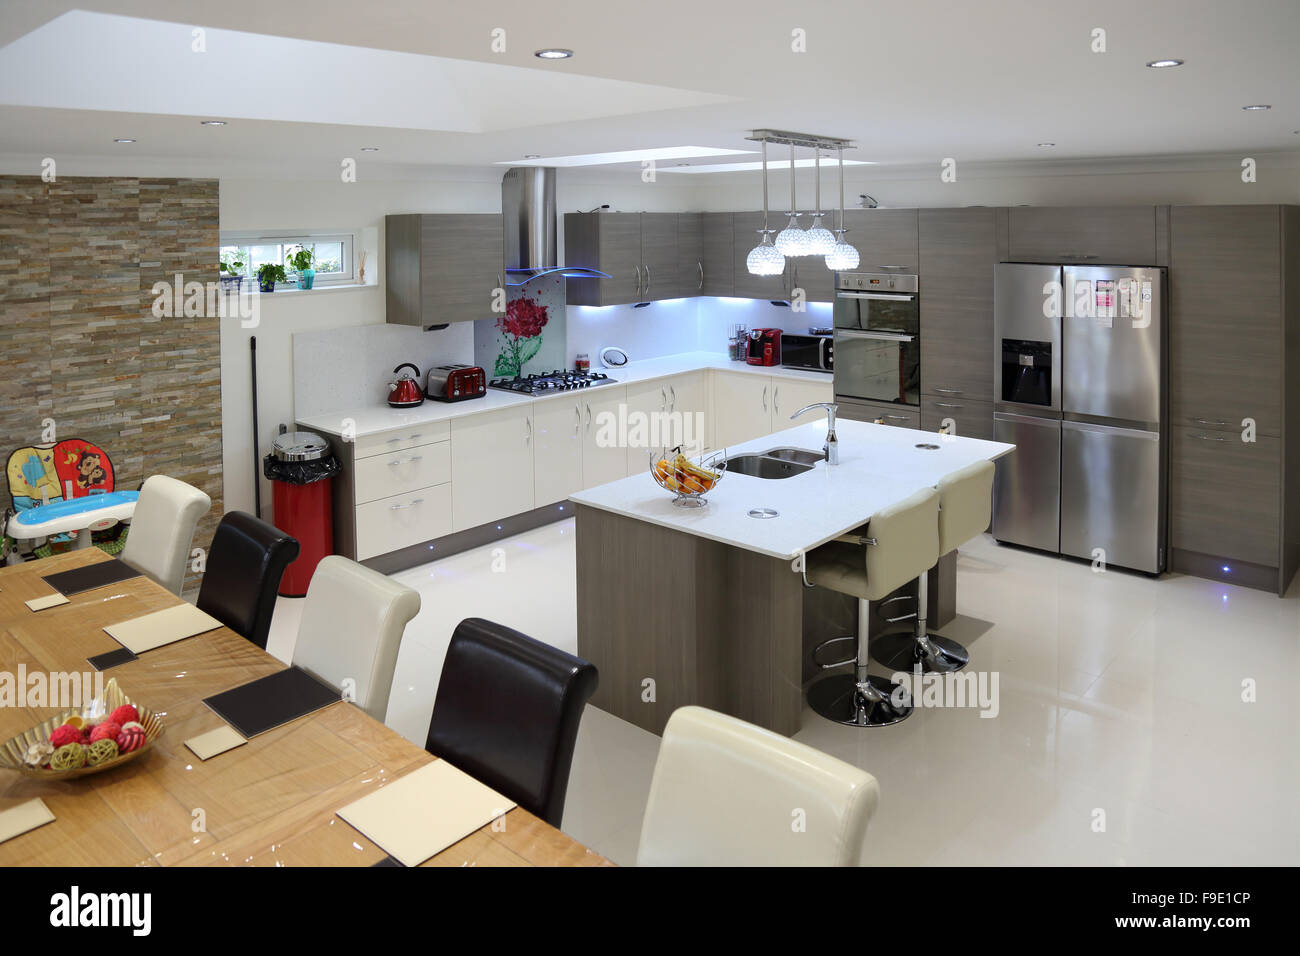 Large Kitchen Dining Room Kitchen Dining Room In A Newly Refurbished House Showing Kitchen